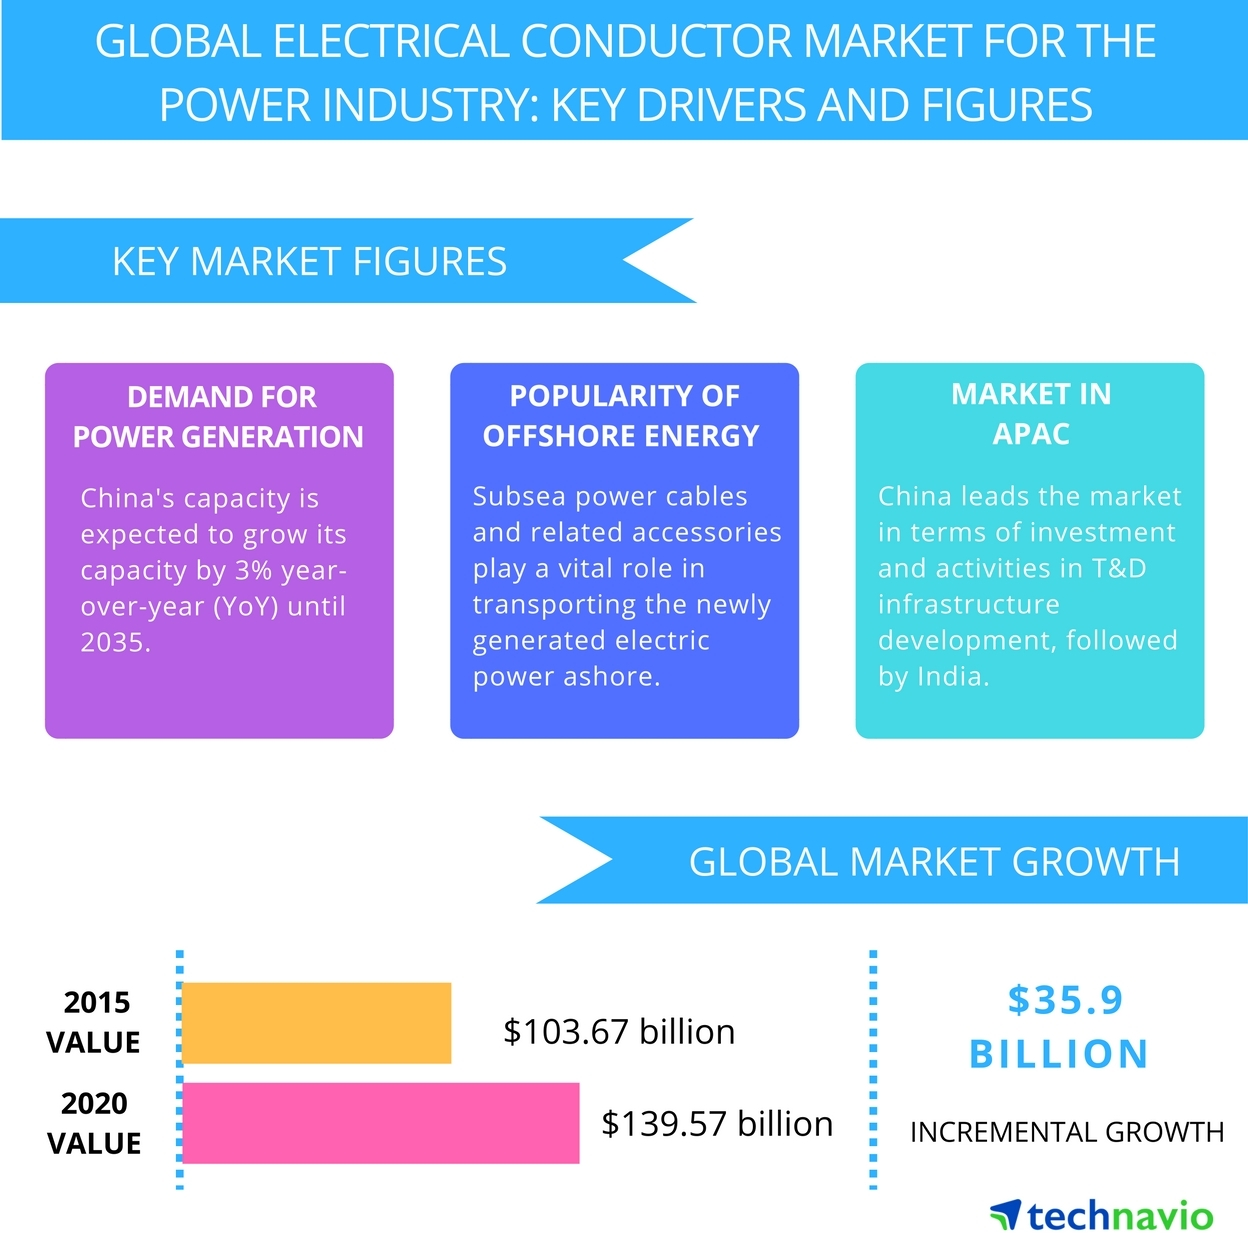 Top 5 Vendors in the Electrical Conductor Market for Power Industry ...